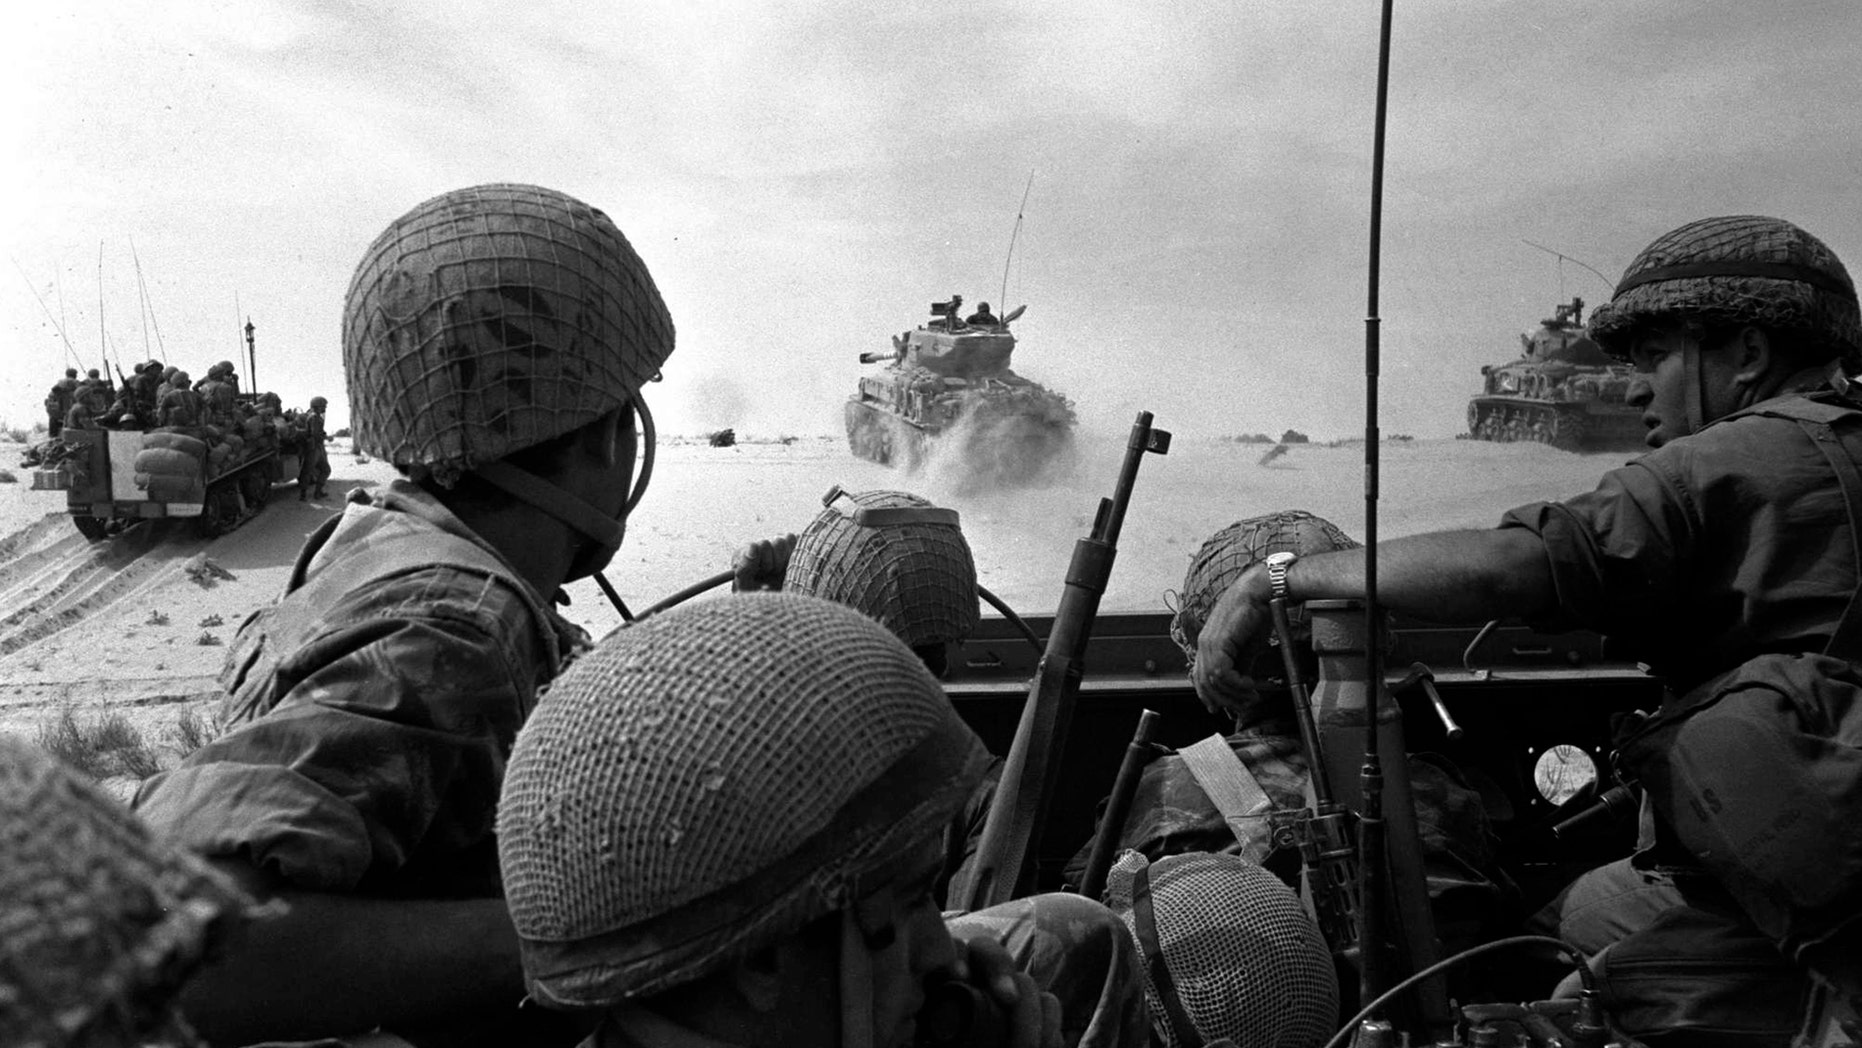 The 1967 Middle East War, widely known as the Six Day War, in this handout photo.